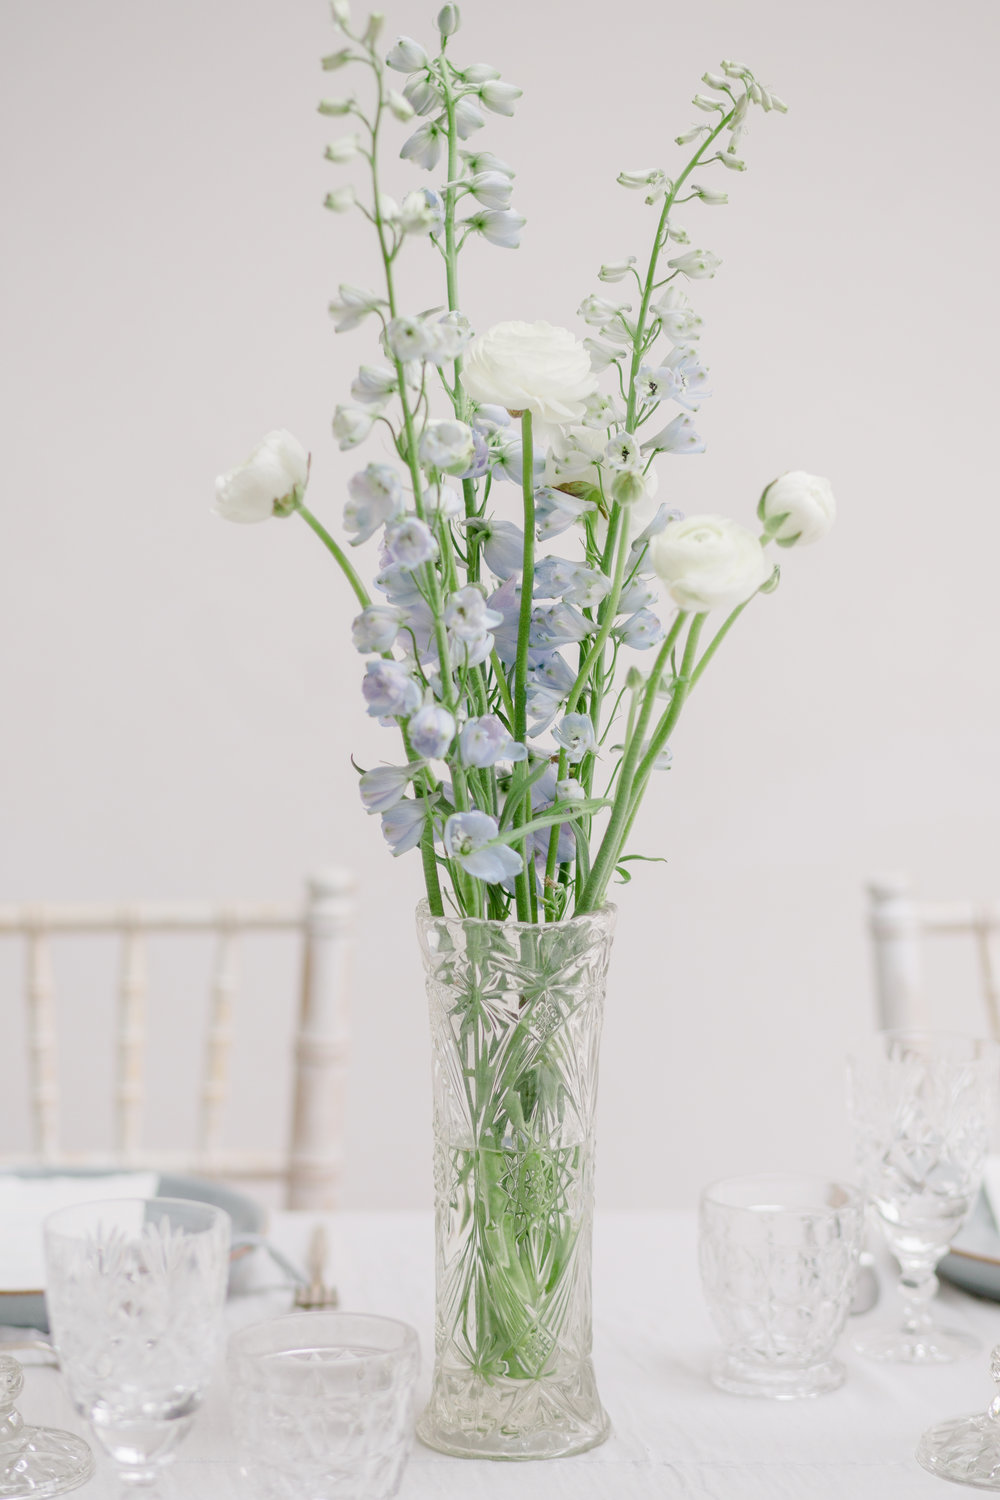 The Timeless Stylist-UK Wedding Design and Styling-Simple and Elegant Wedding Tablescape Inspiration-Summer Flowers